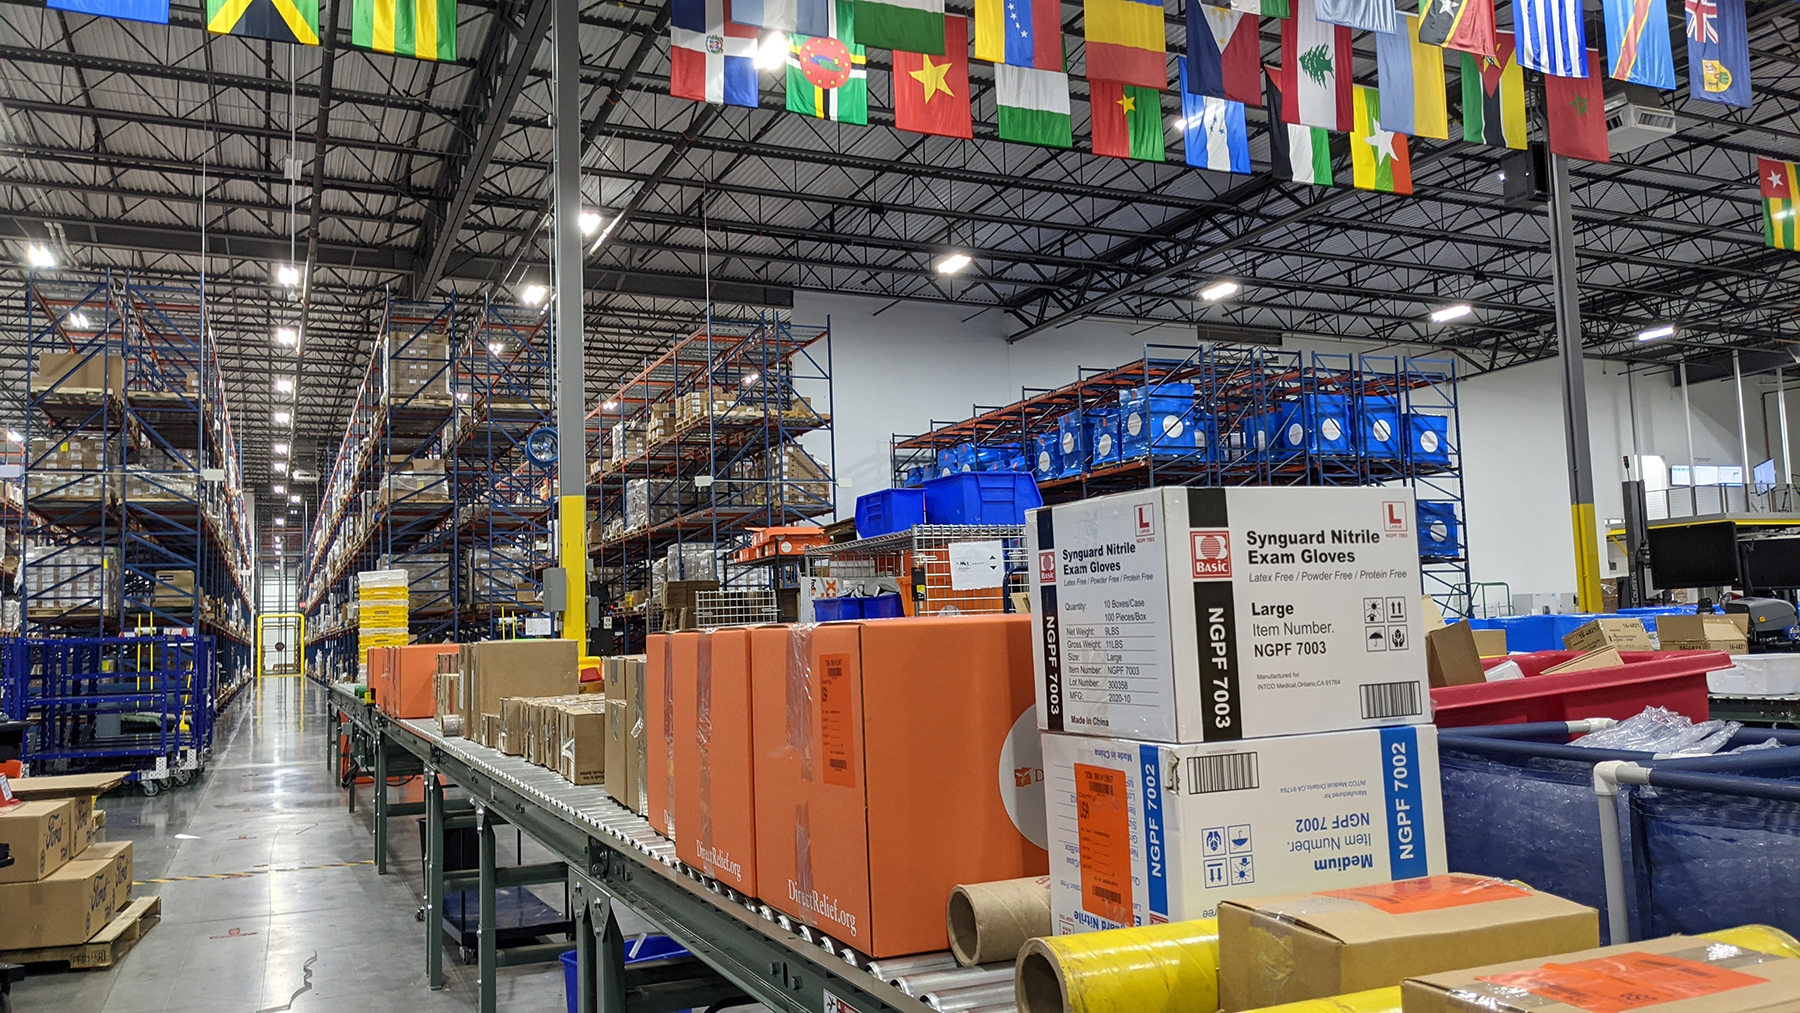 Shipments of medical aid for Texas communities are prepped for departure at Direct Relief's warehouse on Friday, Feb. 19, 2021. (Tony Morain/Direct Relief)